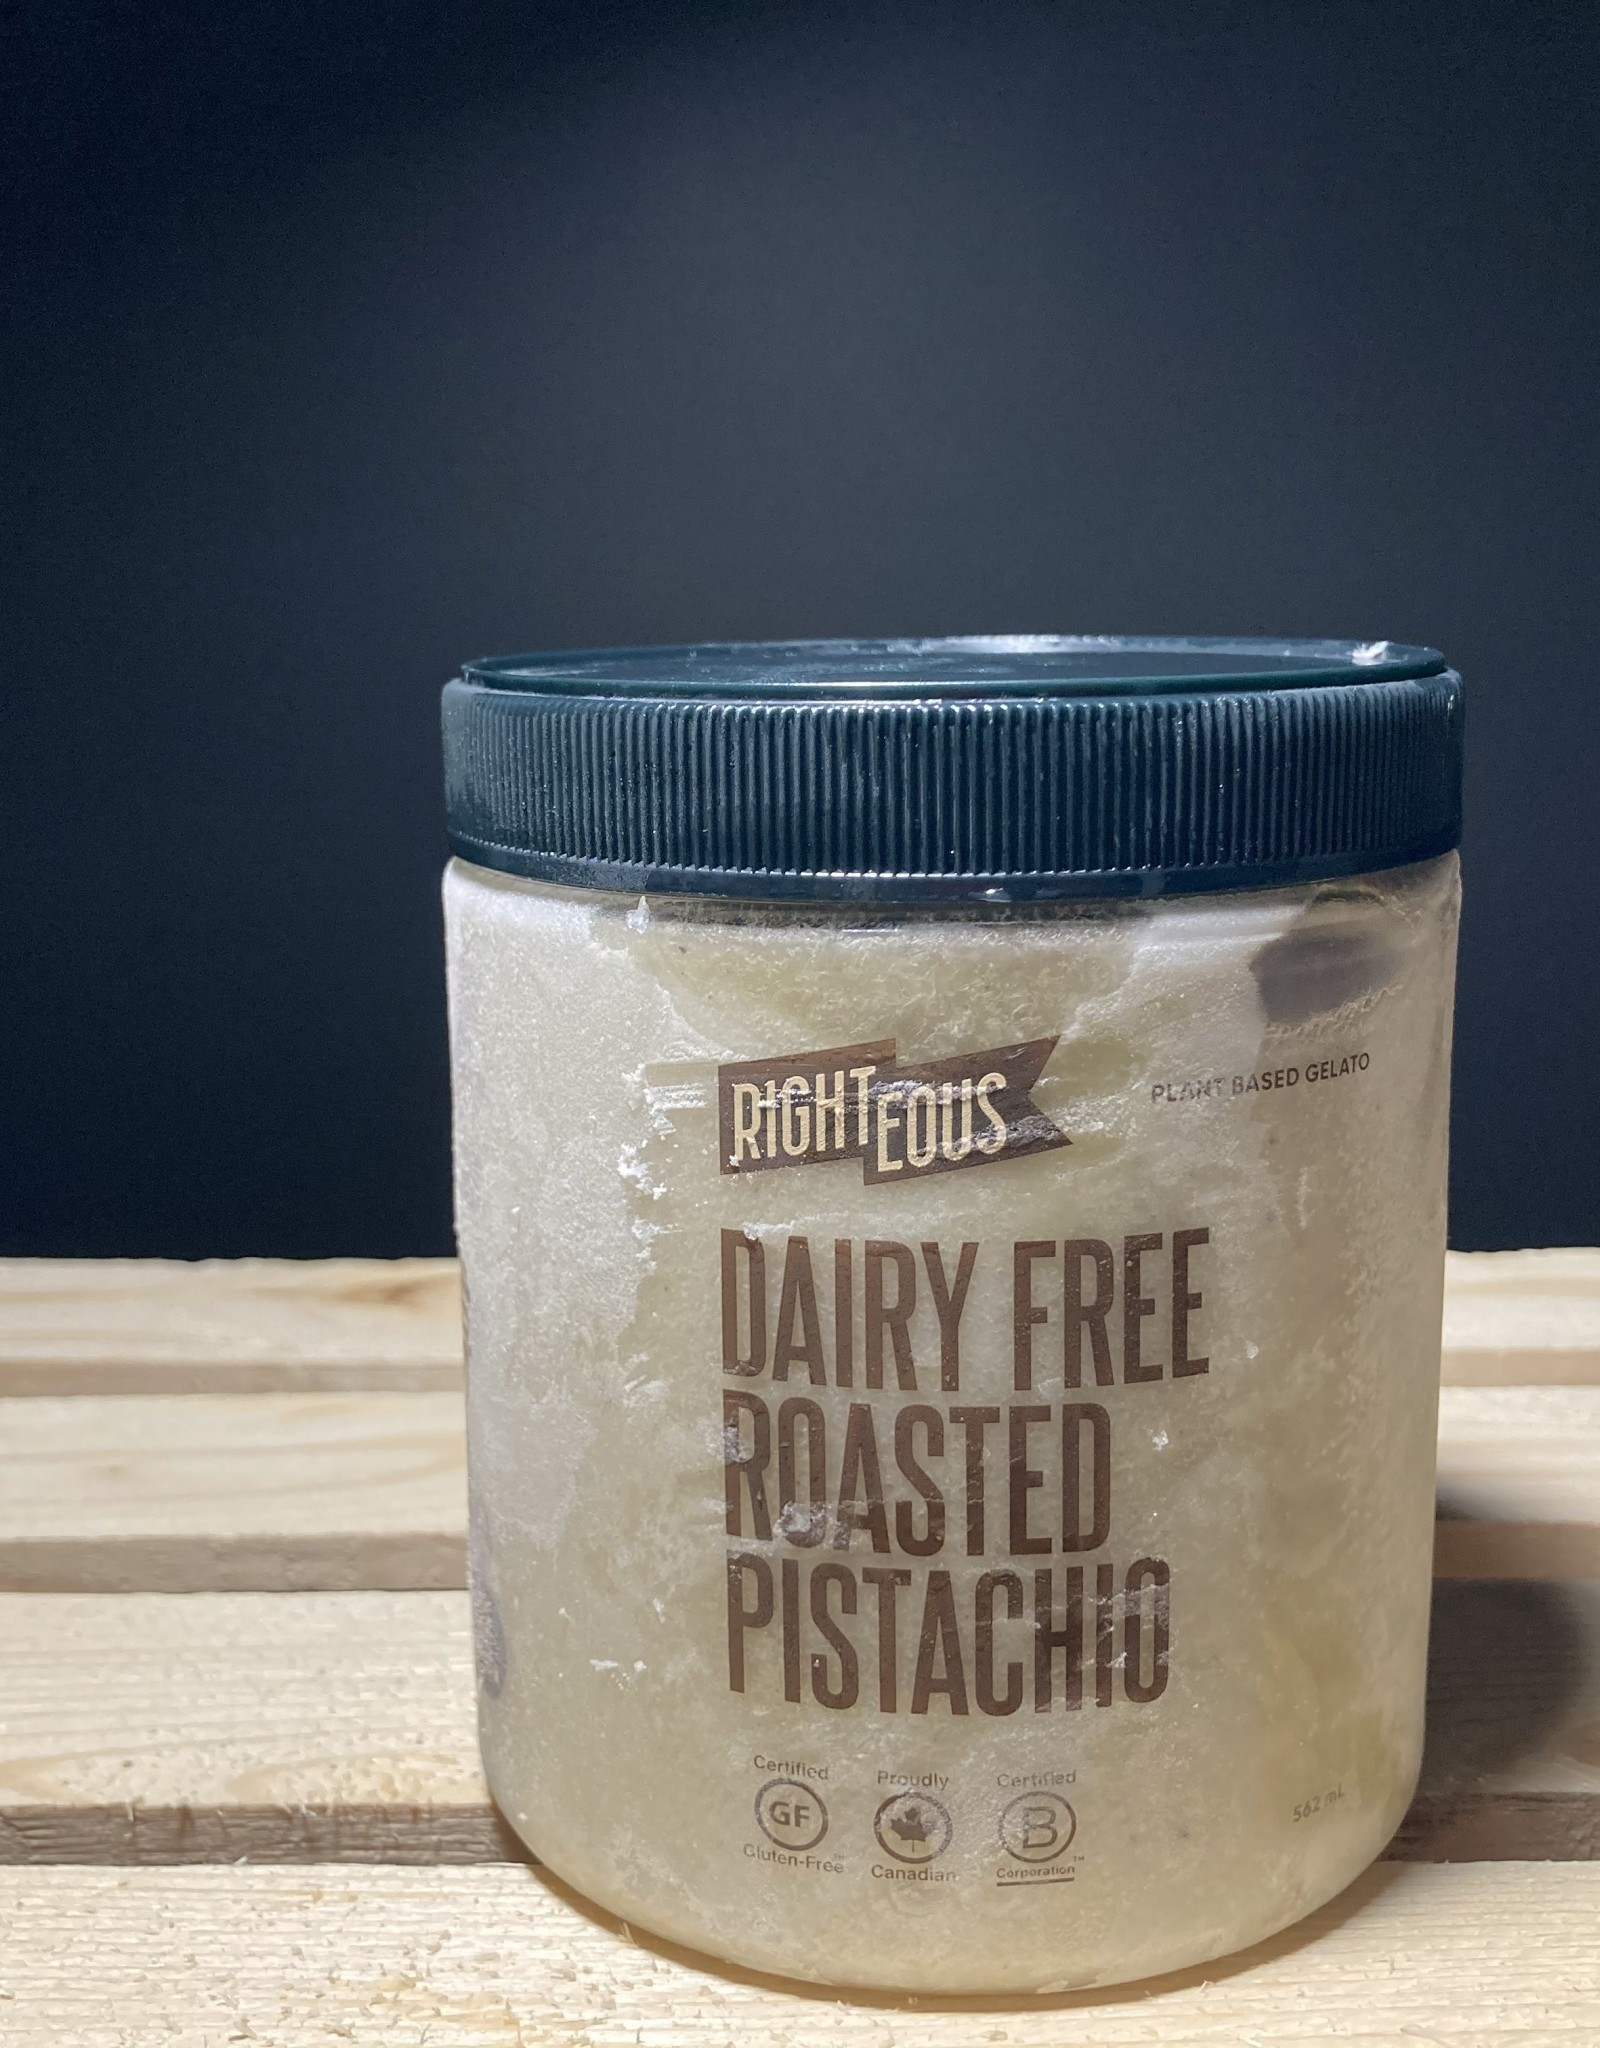 Righteous Righteous - Plant Based Gelato, Roasted Pistachio (562ml)